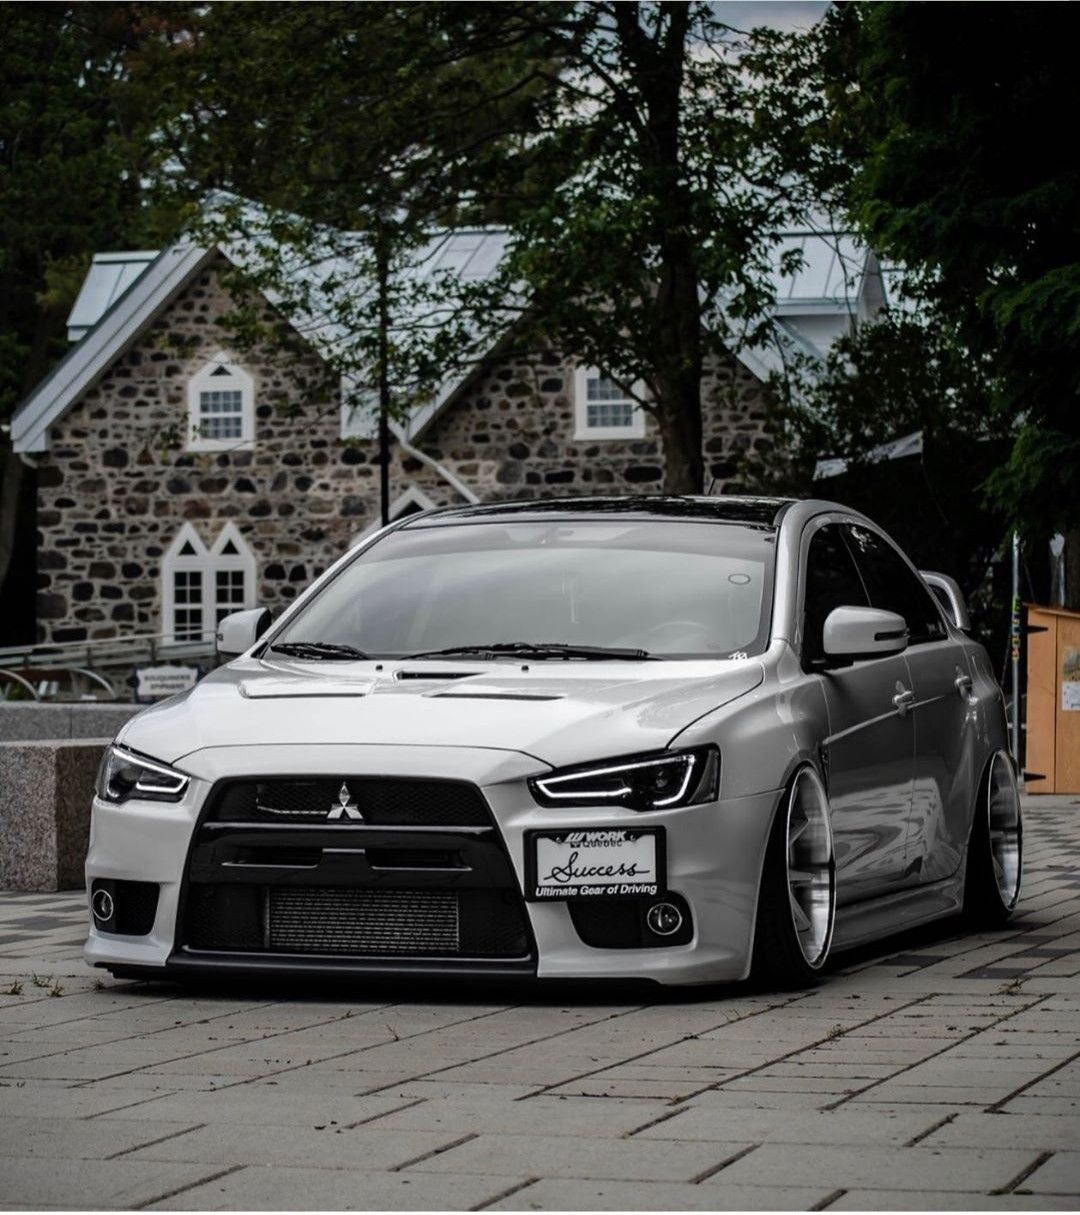 Mitsubishi Lancer Evolution X: Mitsubishi Lancer EVO BIG TURBO DOGBOX 2-STEP LAUNCH